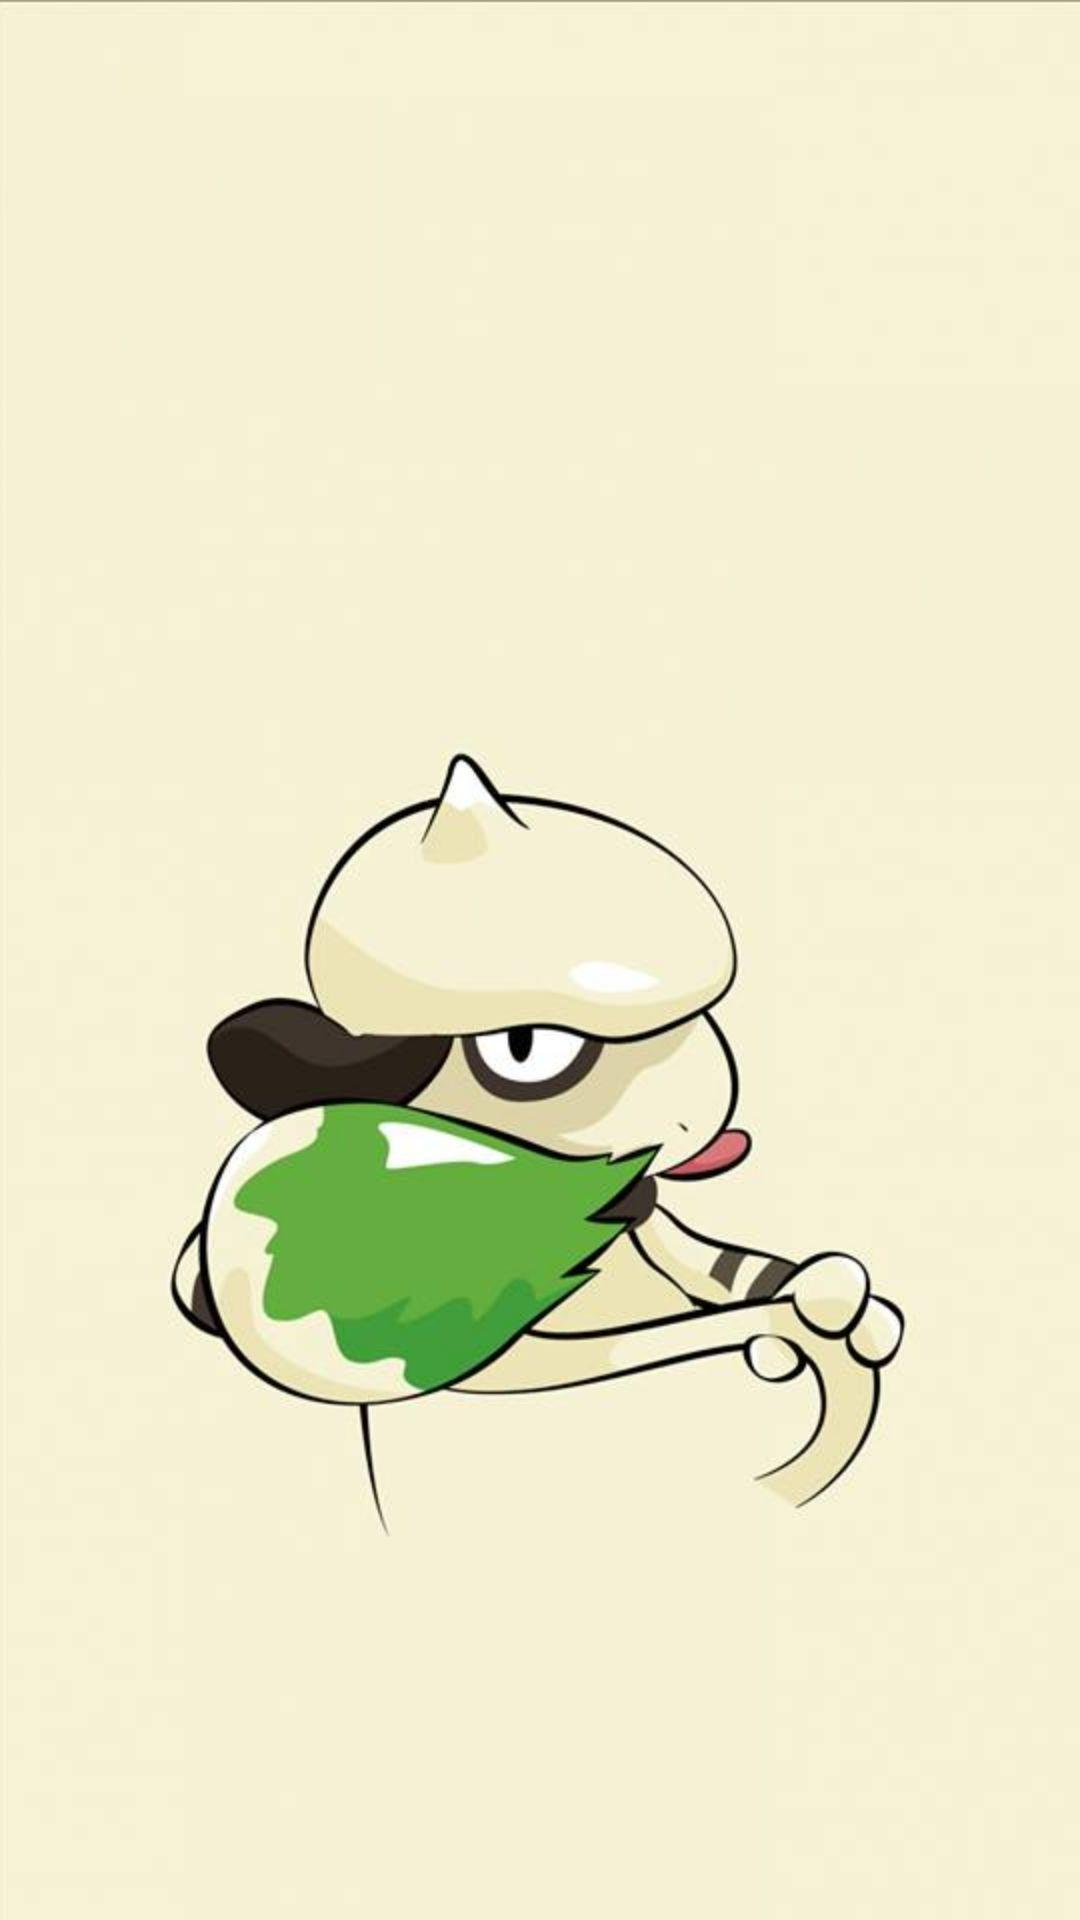 Download Smeargle 1080 x 1920 Wallpapers